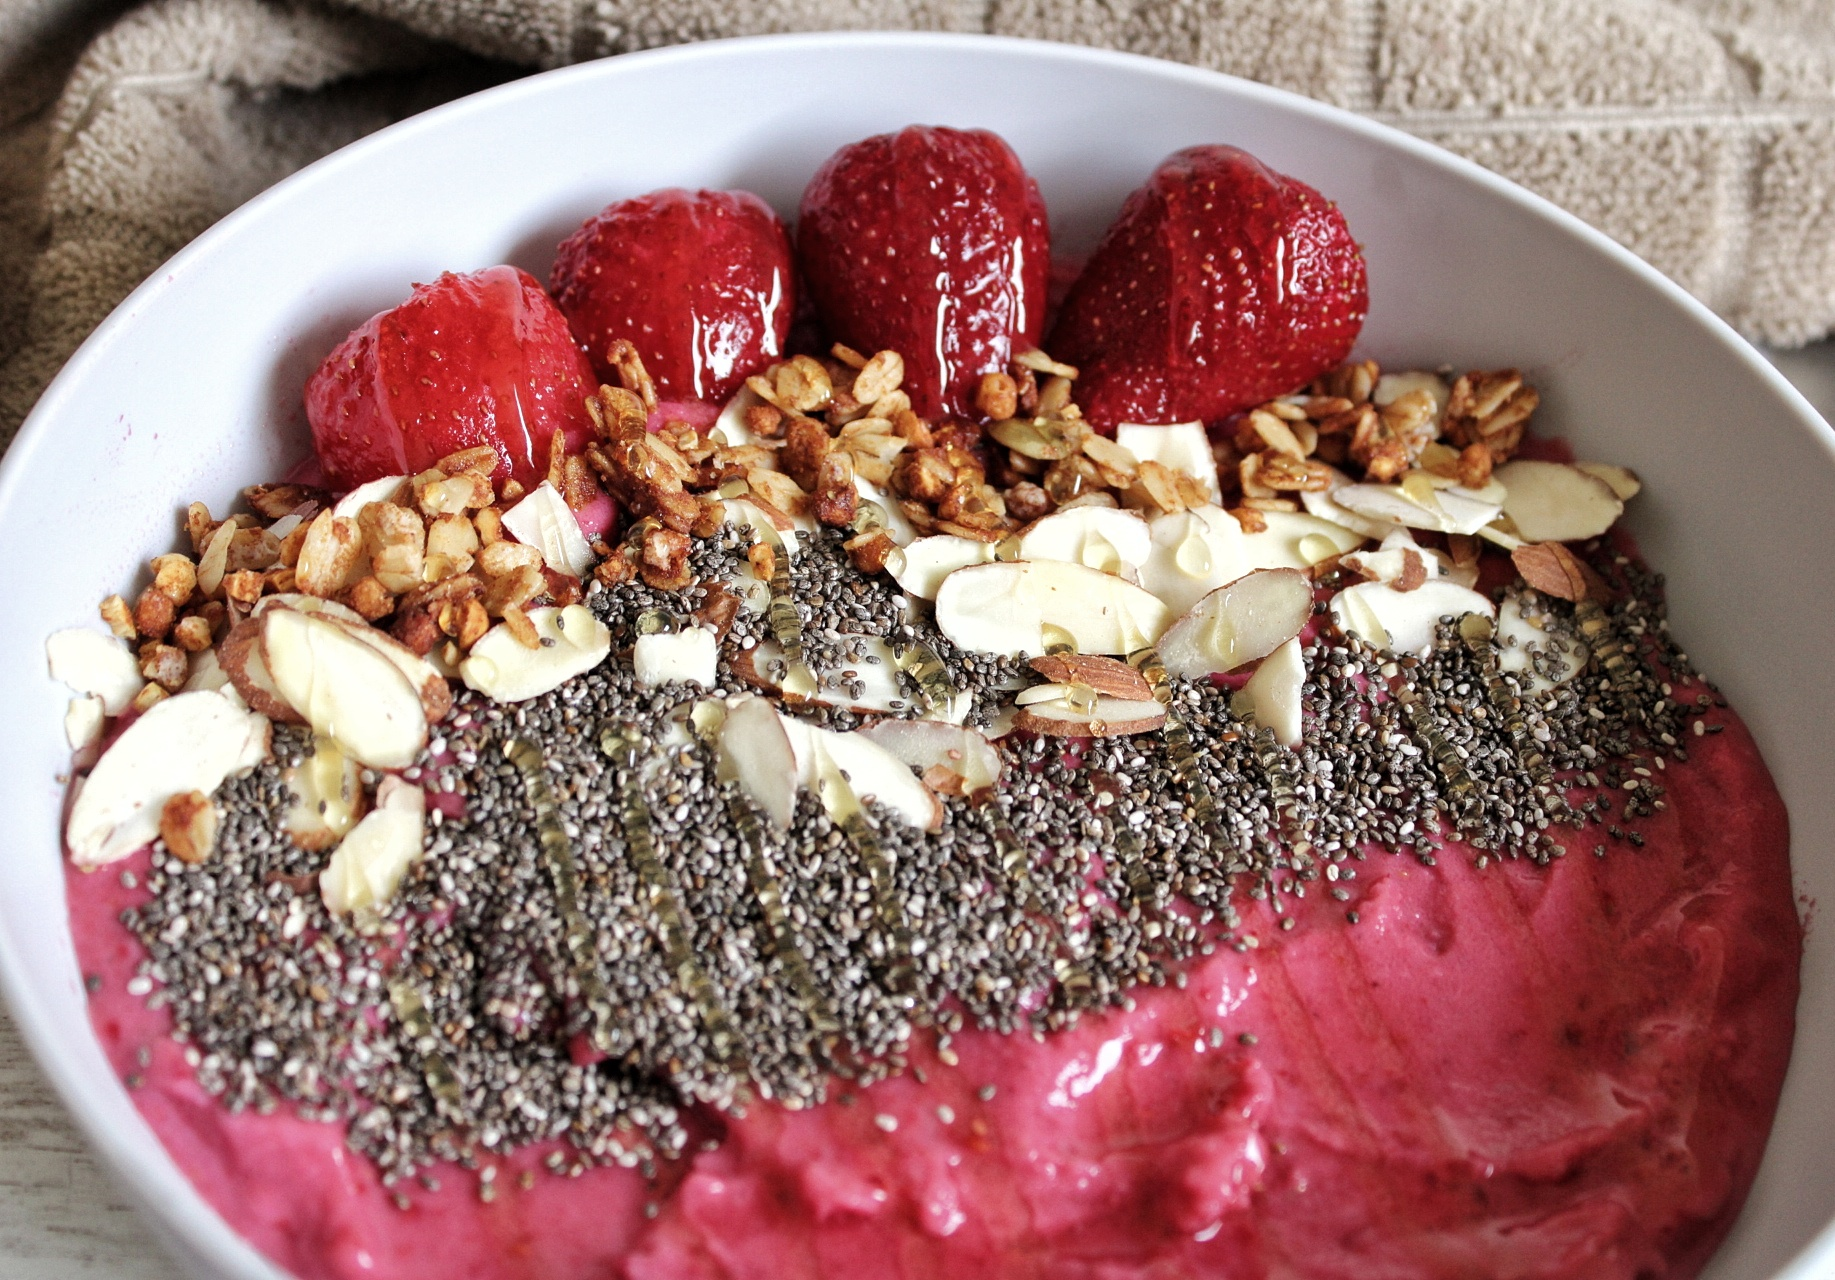 Strawberry raspberry smoothie bowl topped with chia seeds, nuts, granola, and honey.